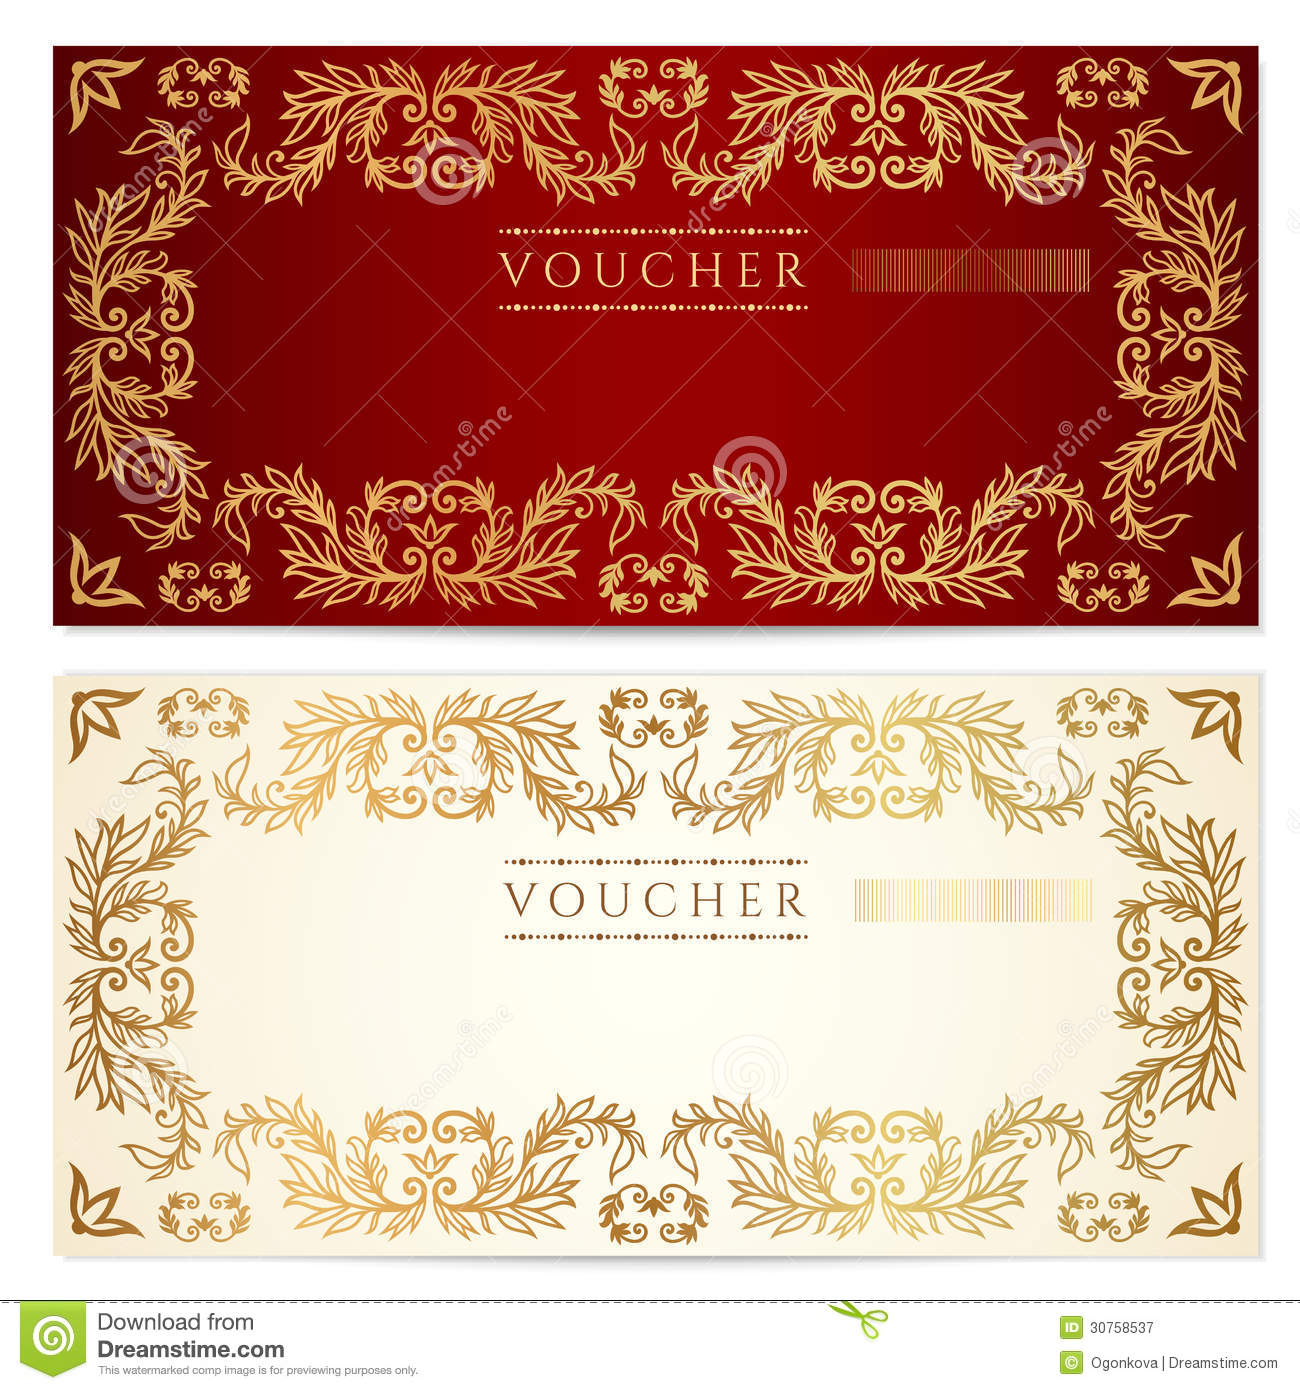 gift certificate template for business resume builder gift certificate template for business gift certificate templates voucher gift certificate template gold pattern